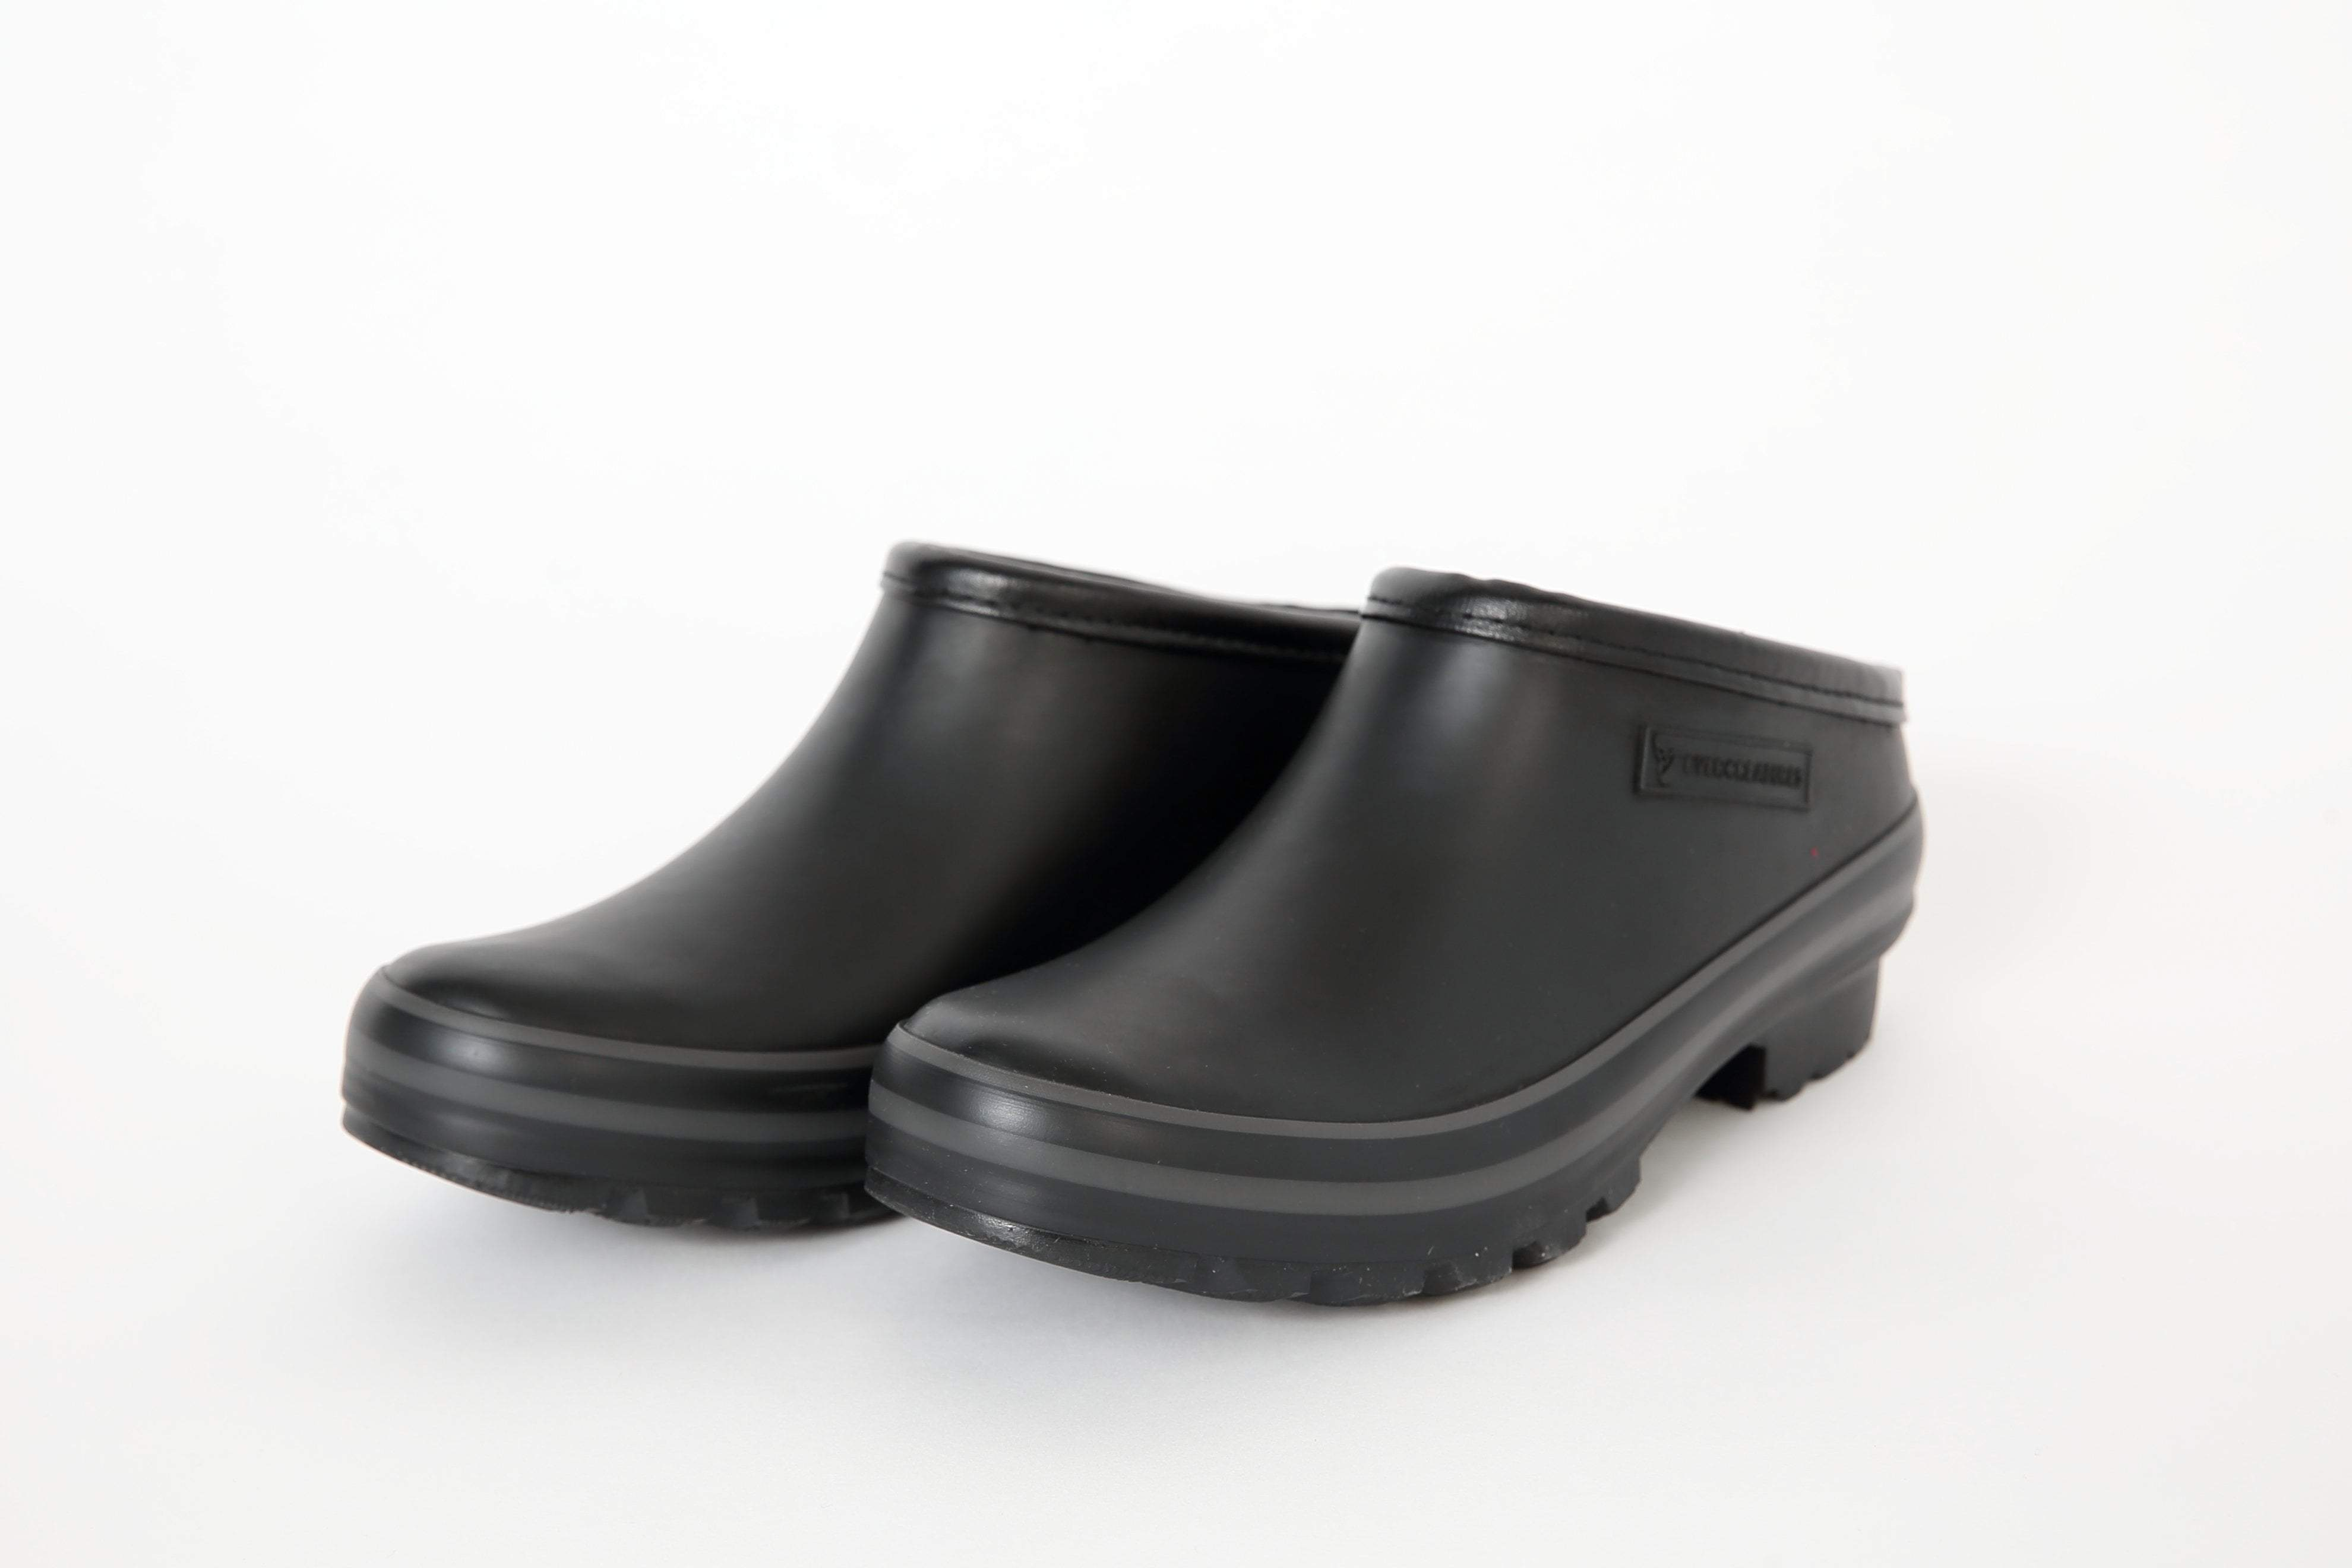 Evercreatures All Black Backdoor Wellies - Evercreatures wellies